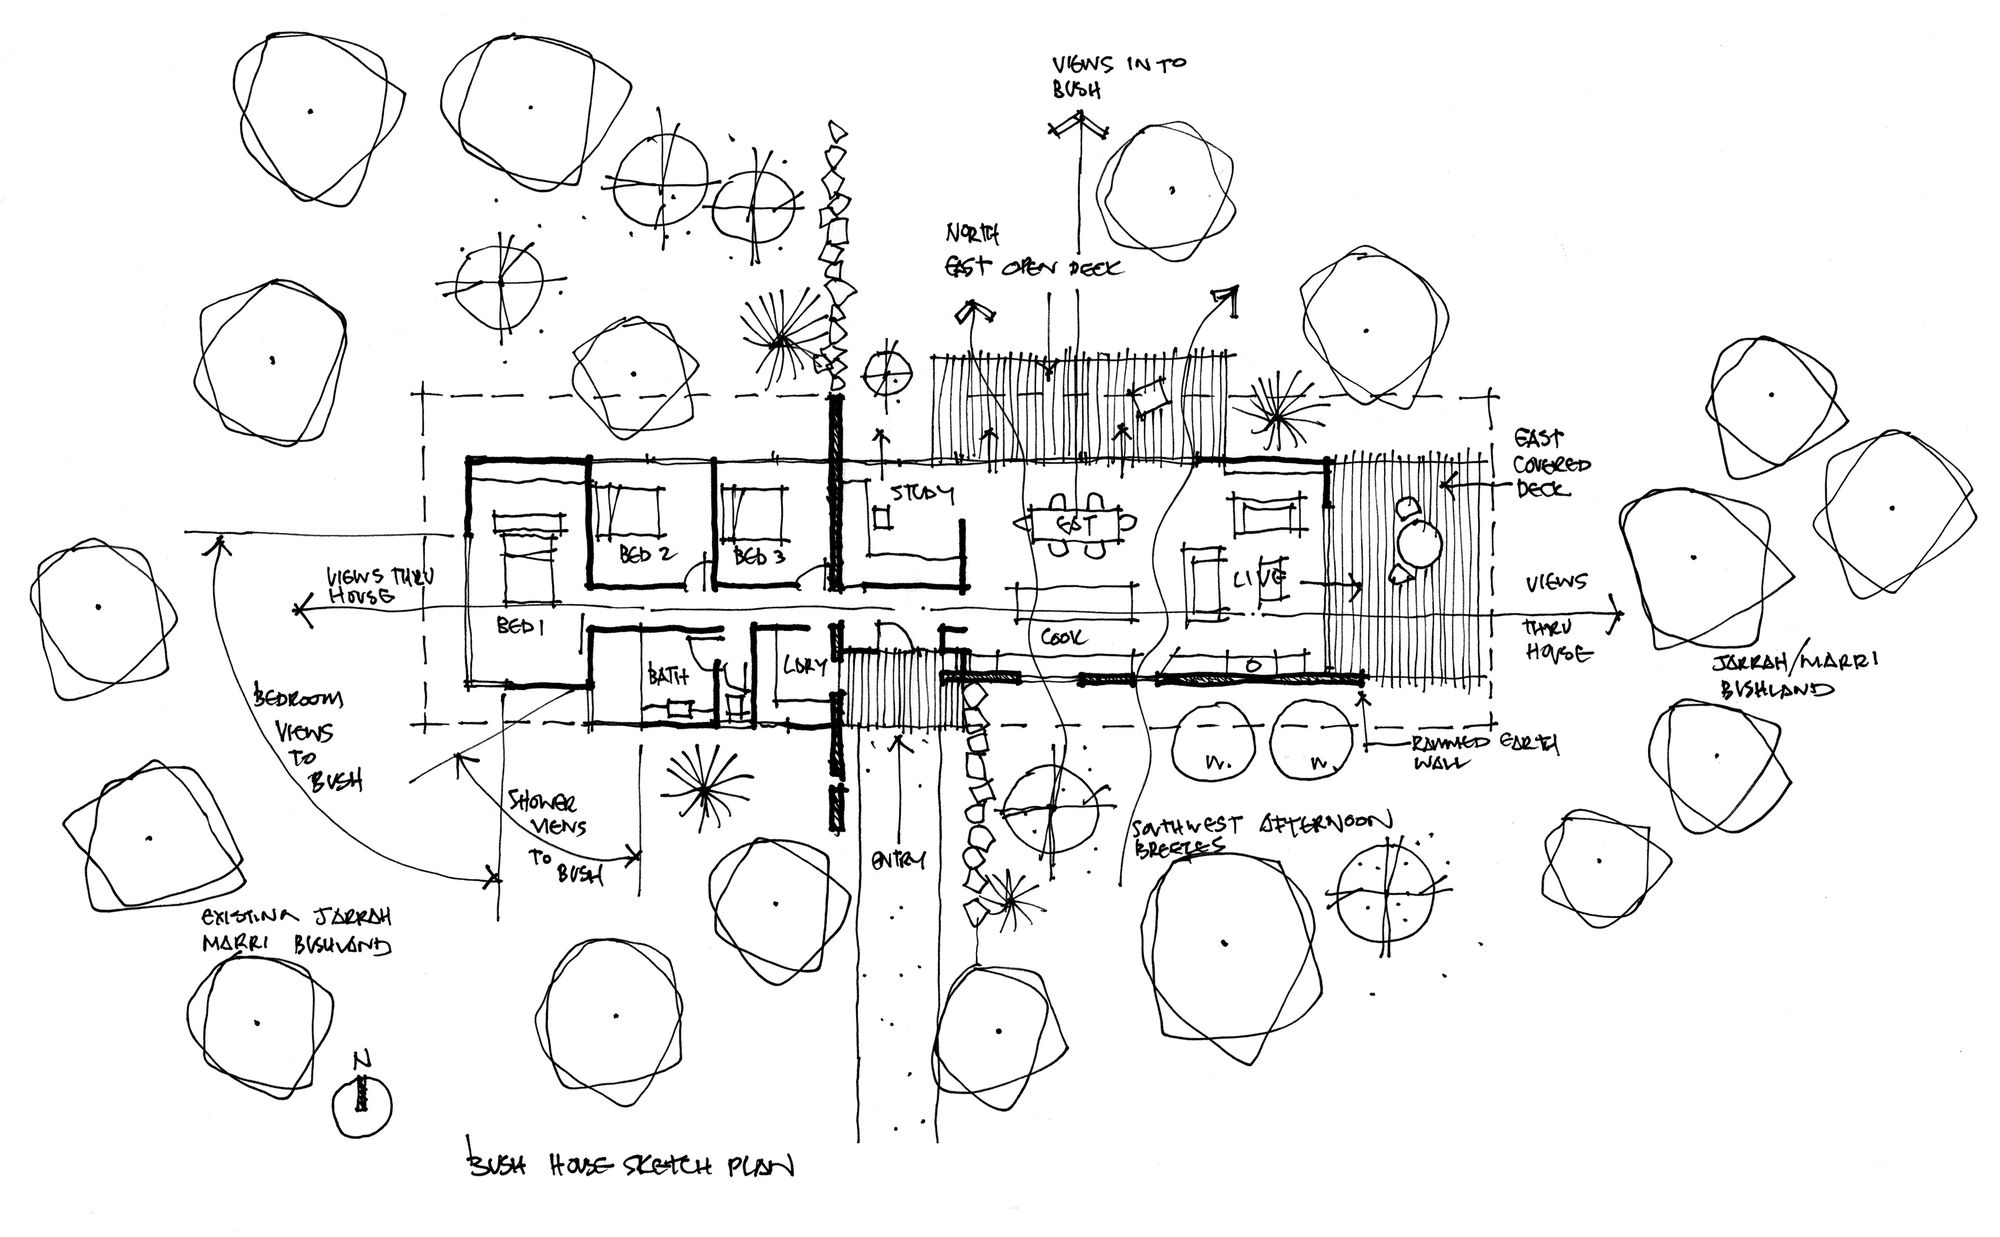 small resolution of image 24 of 28 from gallery of bush house archterra architects croquis floor plan